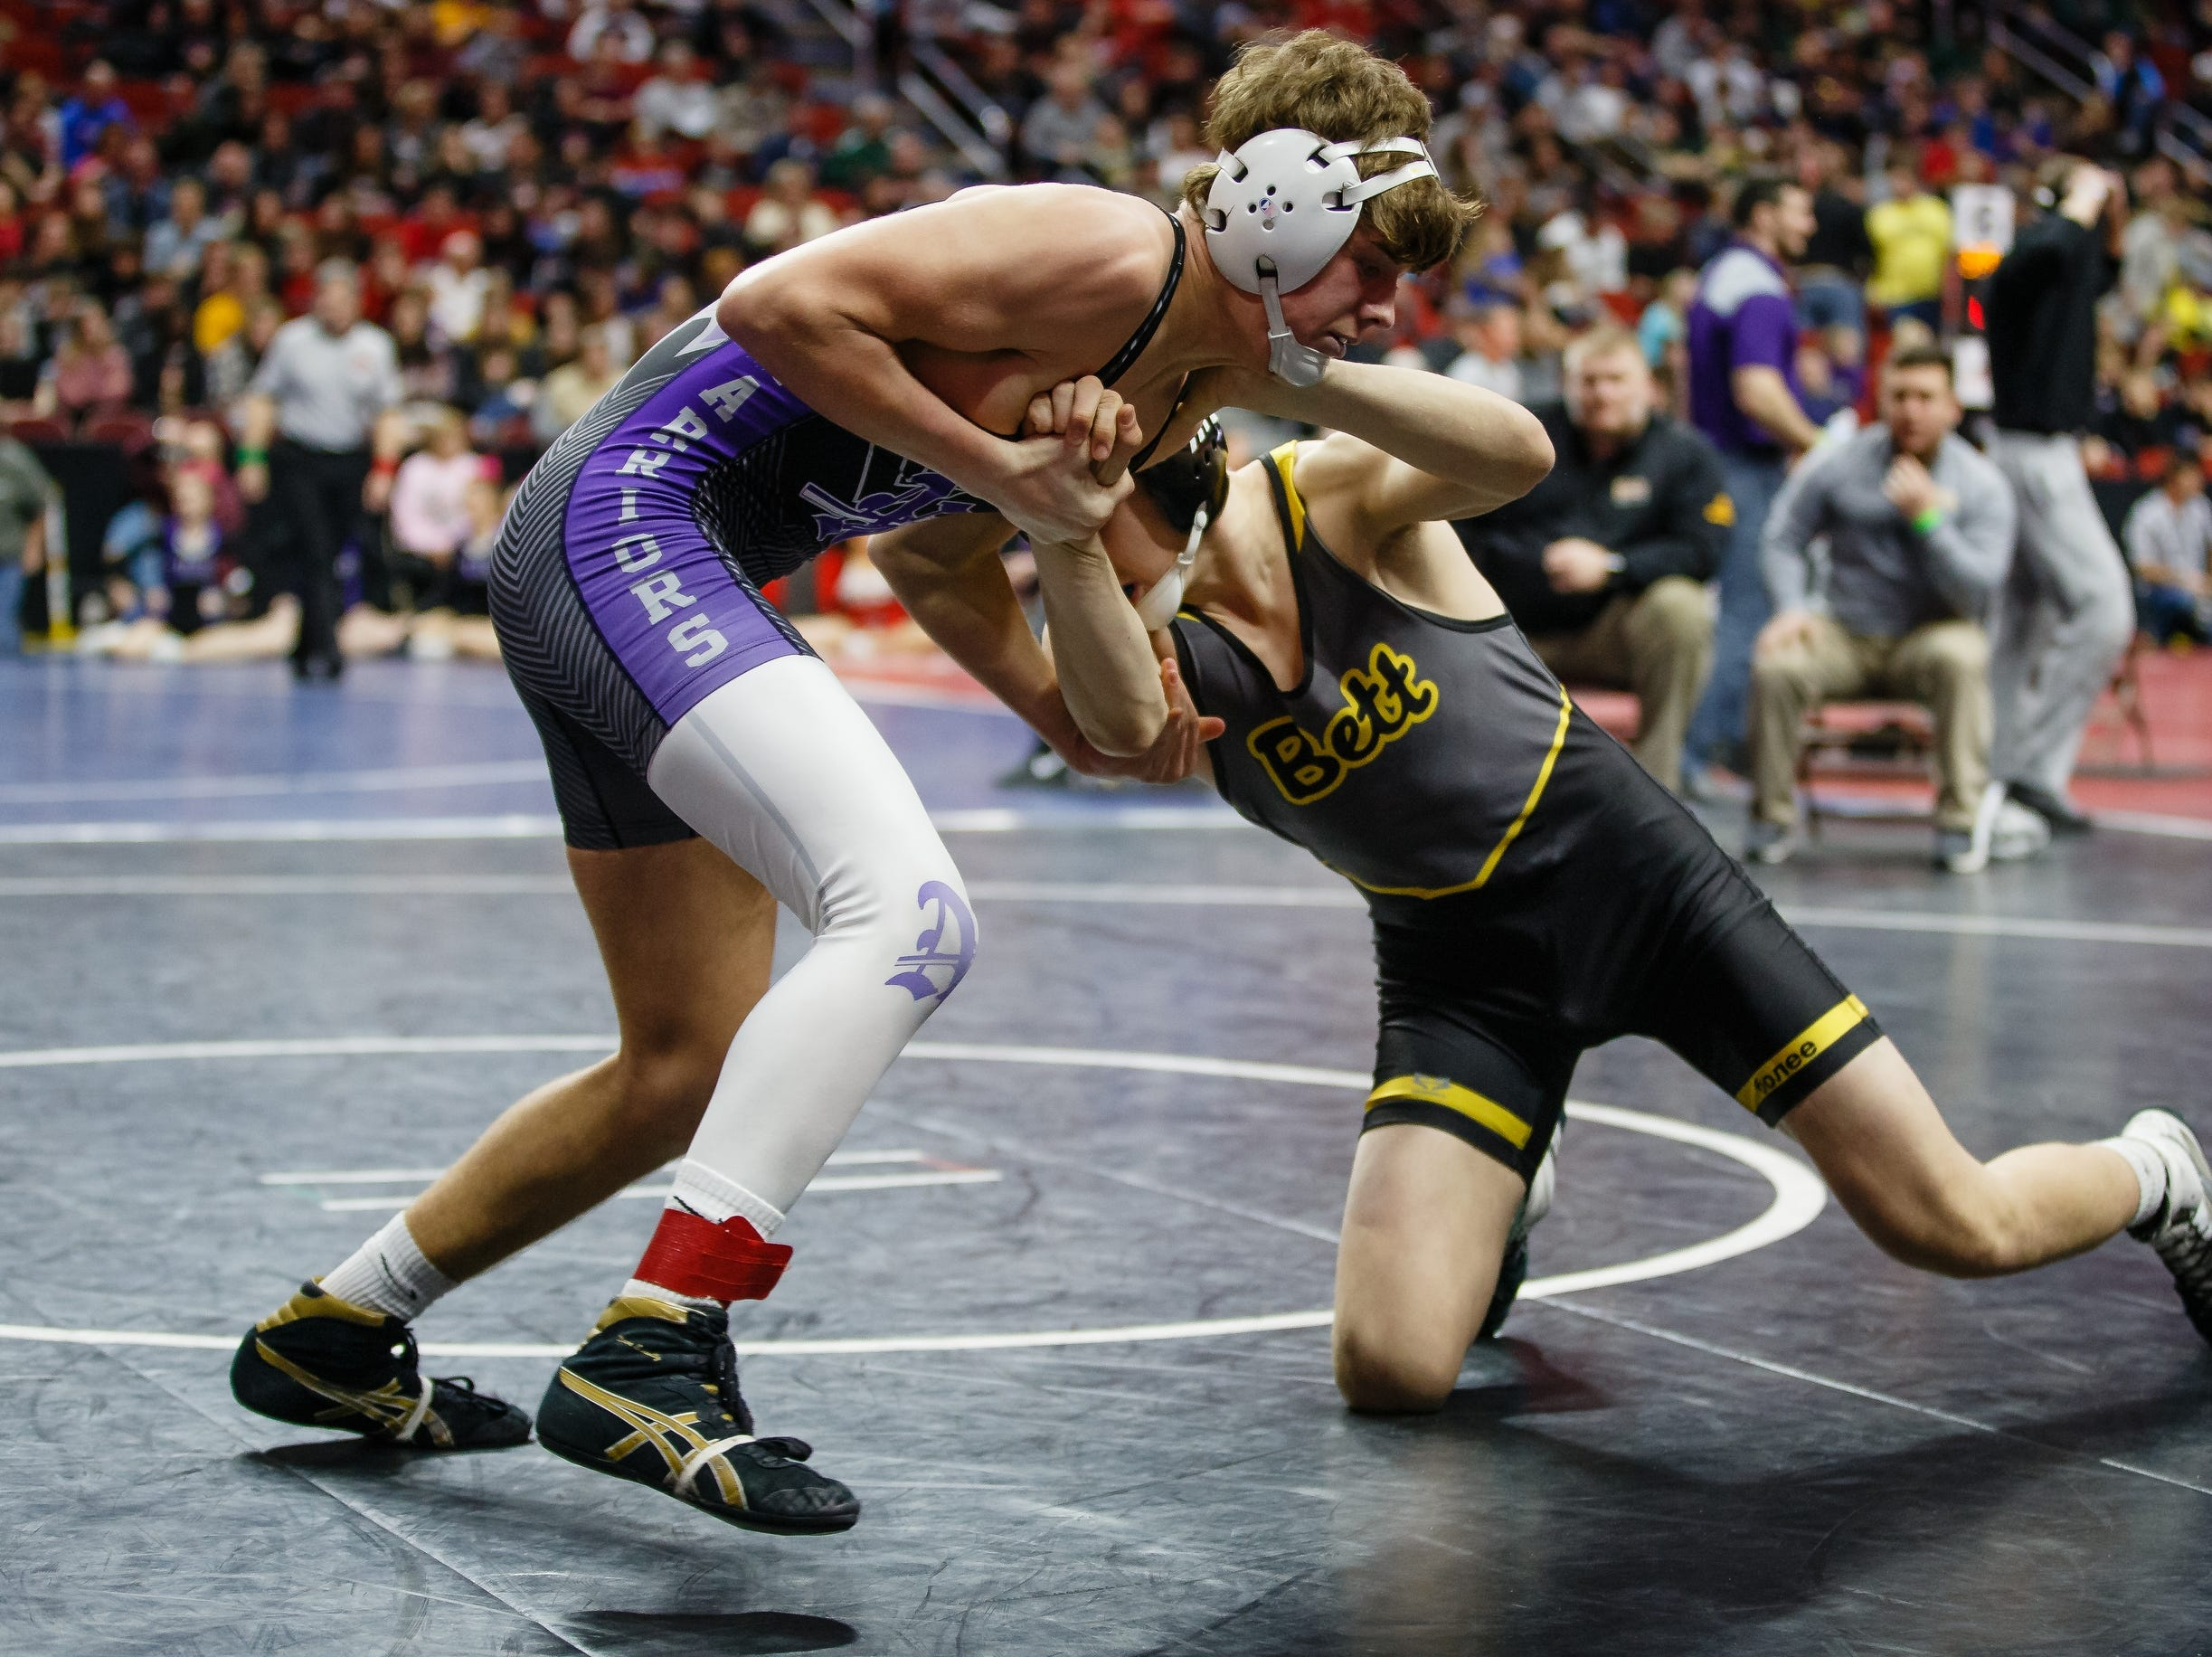 Bradley Hill from Bettendorf wrestles Carter Schmidt from Norwalk during their 3A 152 lb match at the state wrestling tournament on Thursday, Feb. 14, 2019 in Des Moines.